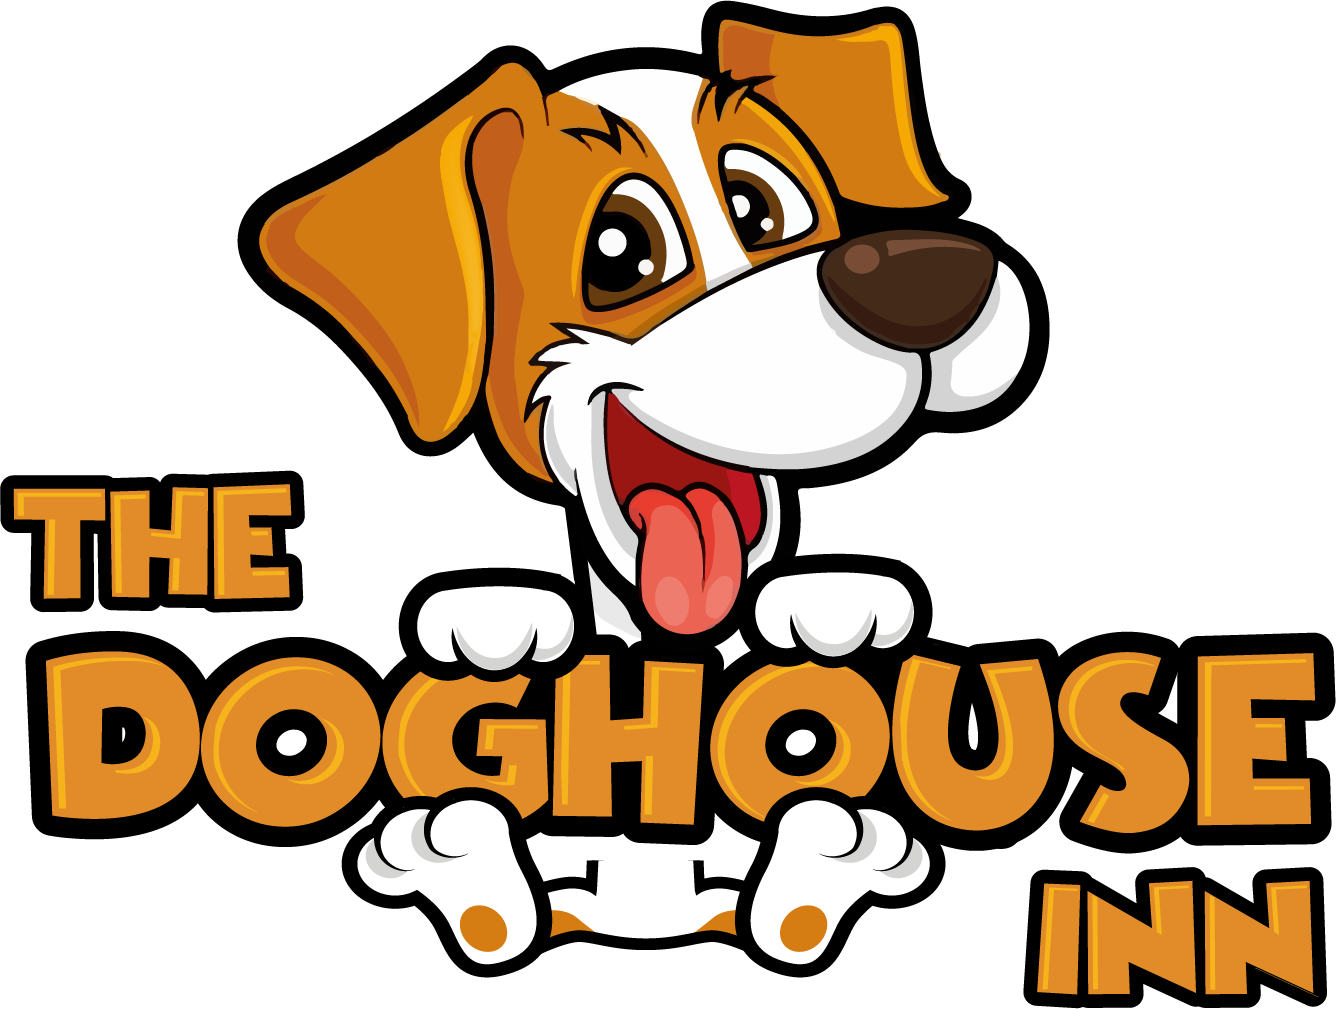 The DogHouse Inn